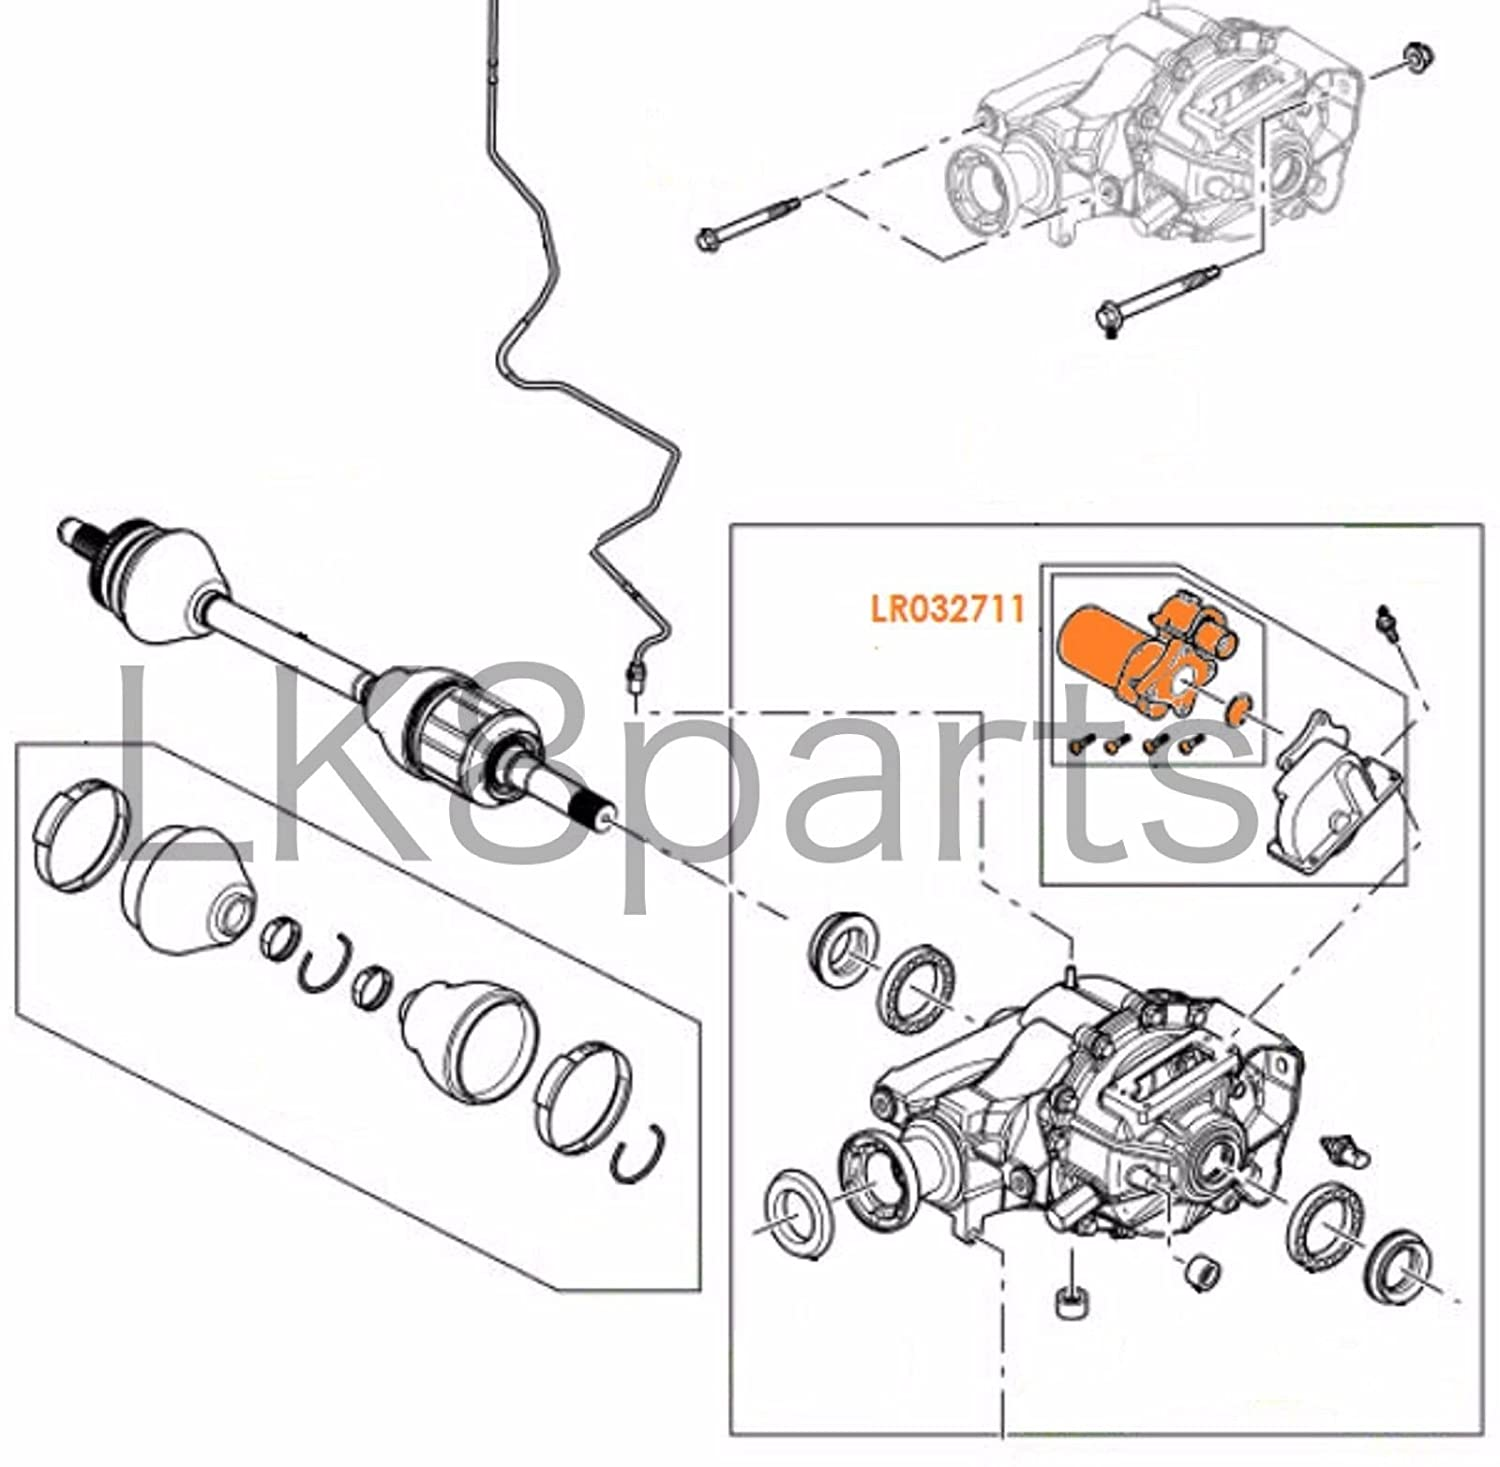 Range Rover Sport Lr3 Lr4 Oem Rear Axle Differential Locking Motor Engine Diagram Lr032711 Car Motorbike